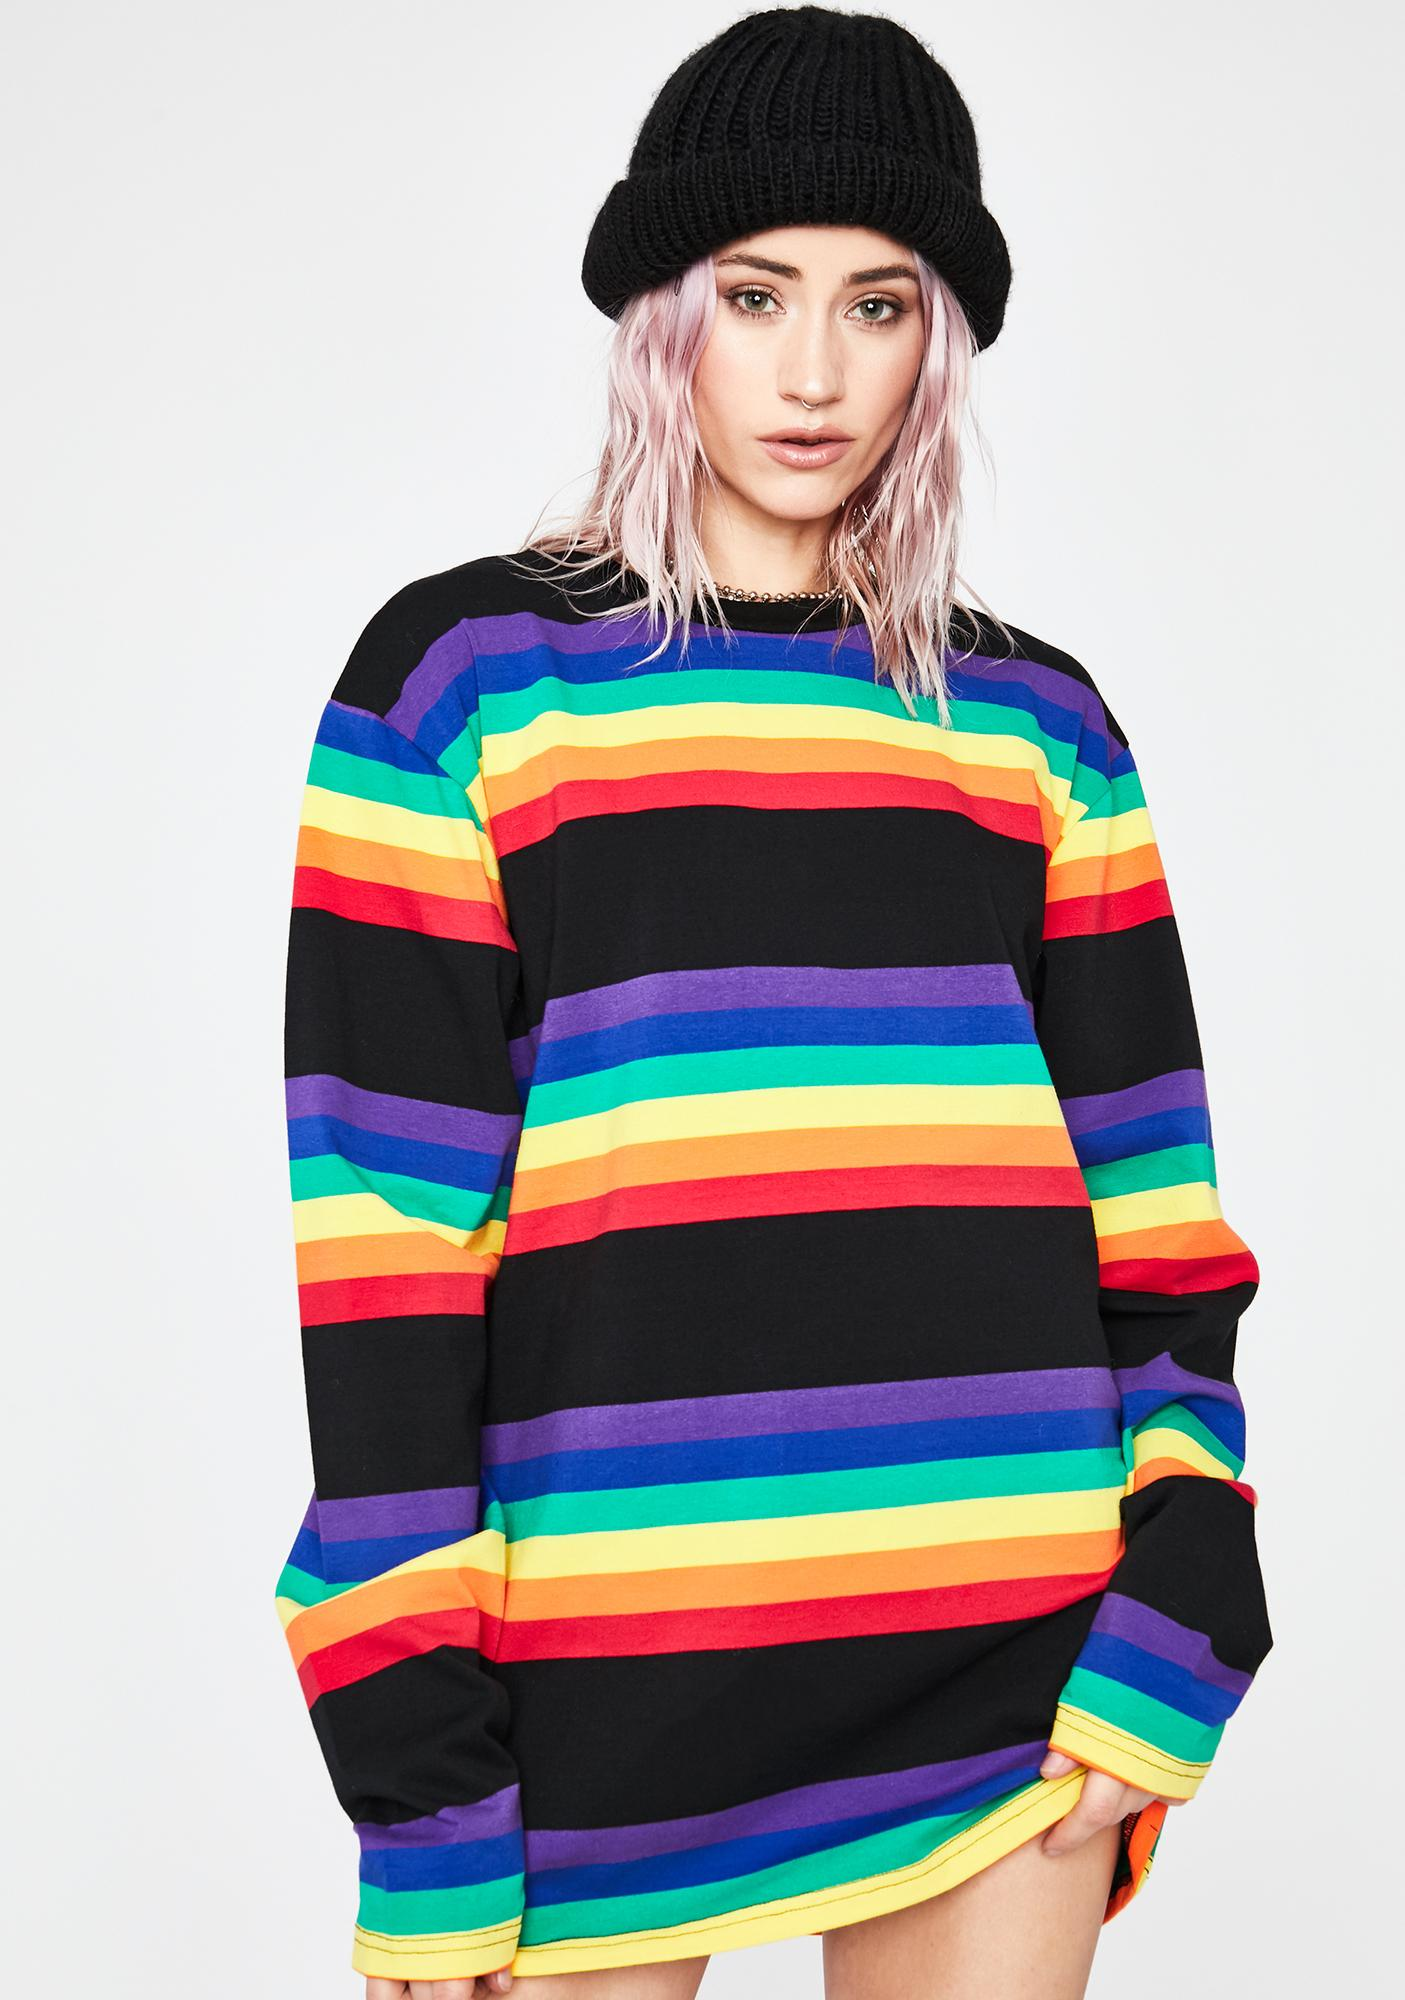 Current Mood Hometown Dropout Stripe Tee